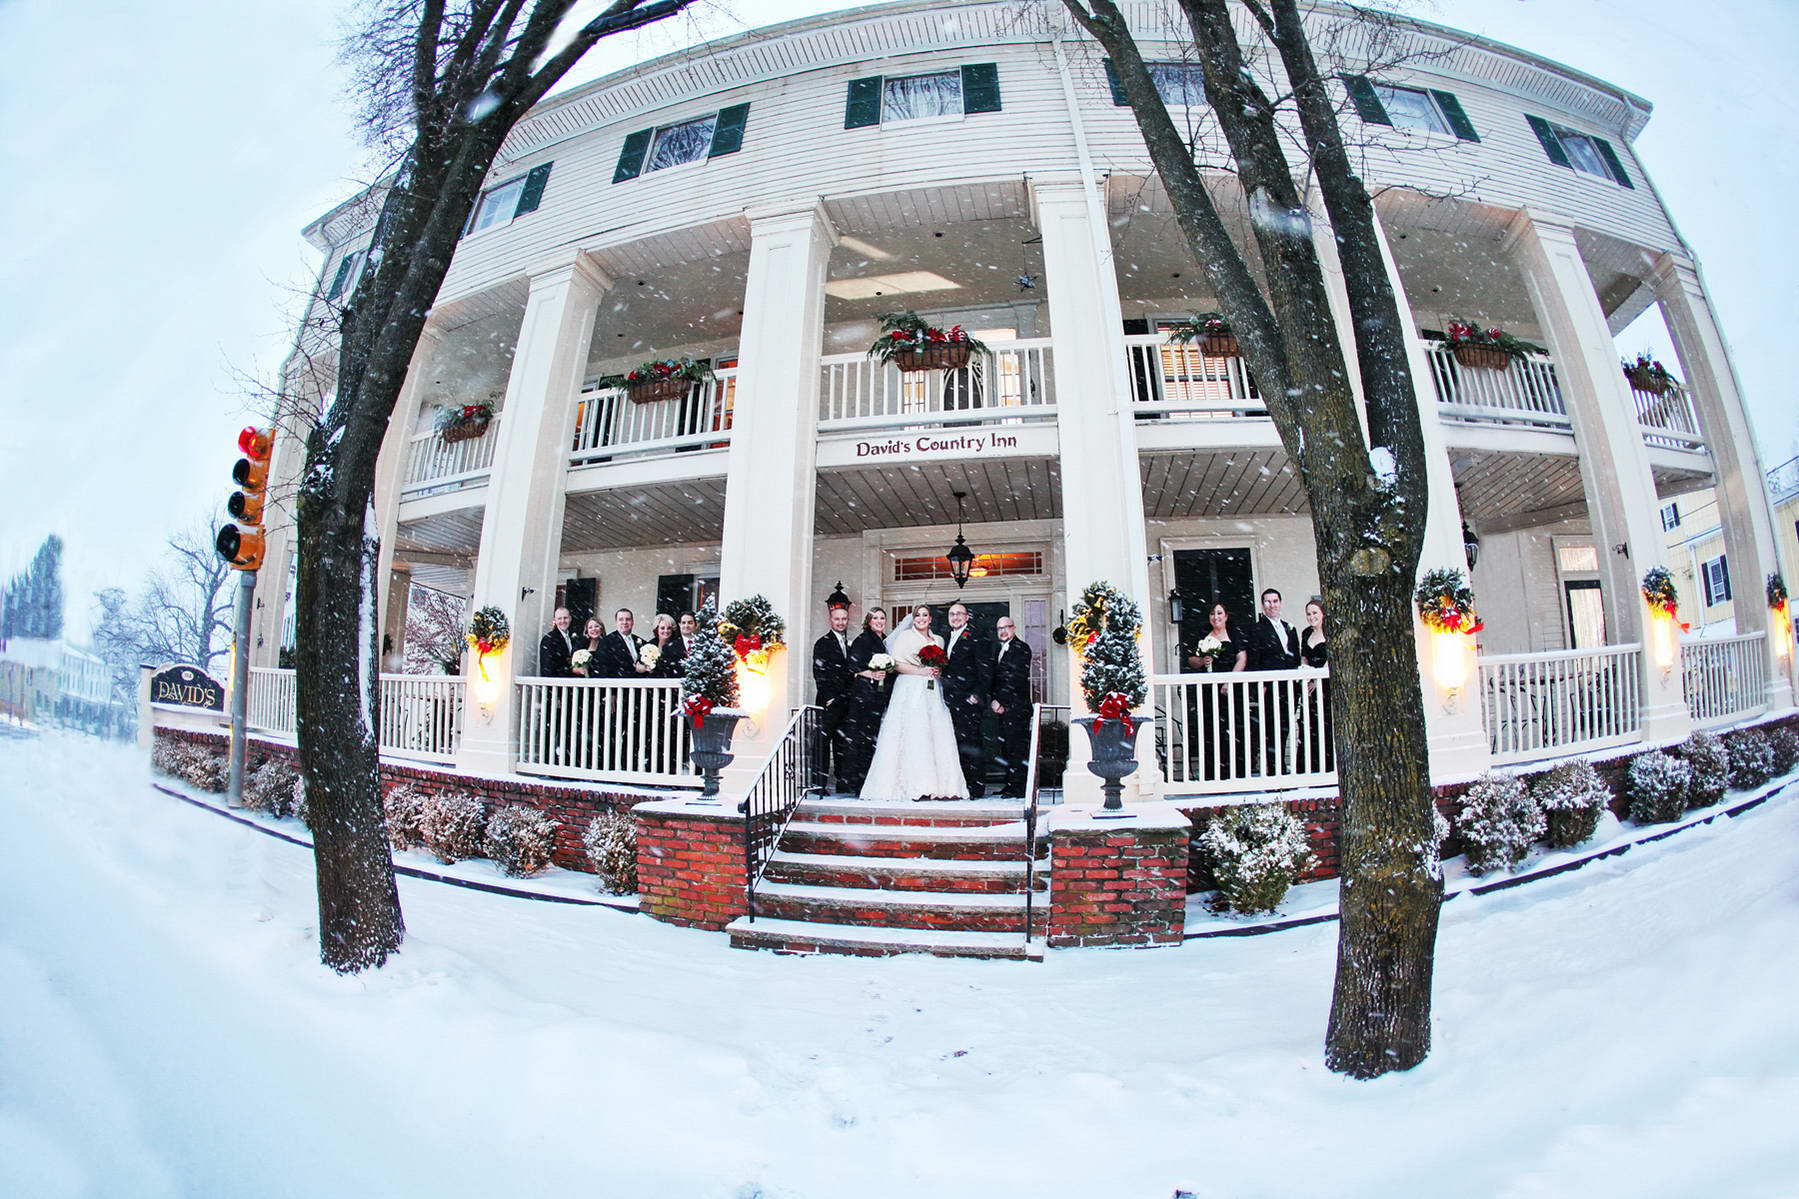 Davids Country Inn,Bridal Party in the Snow,Kathy Harris